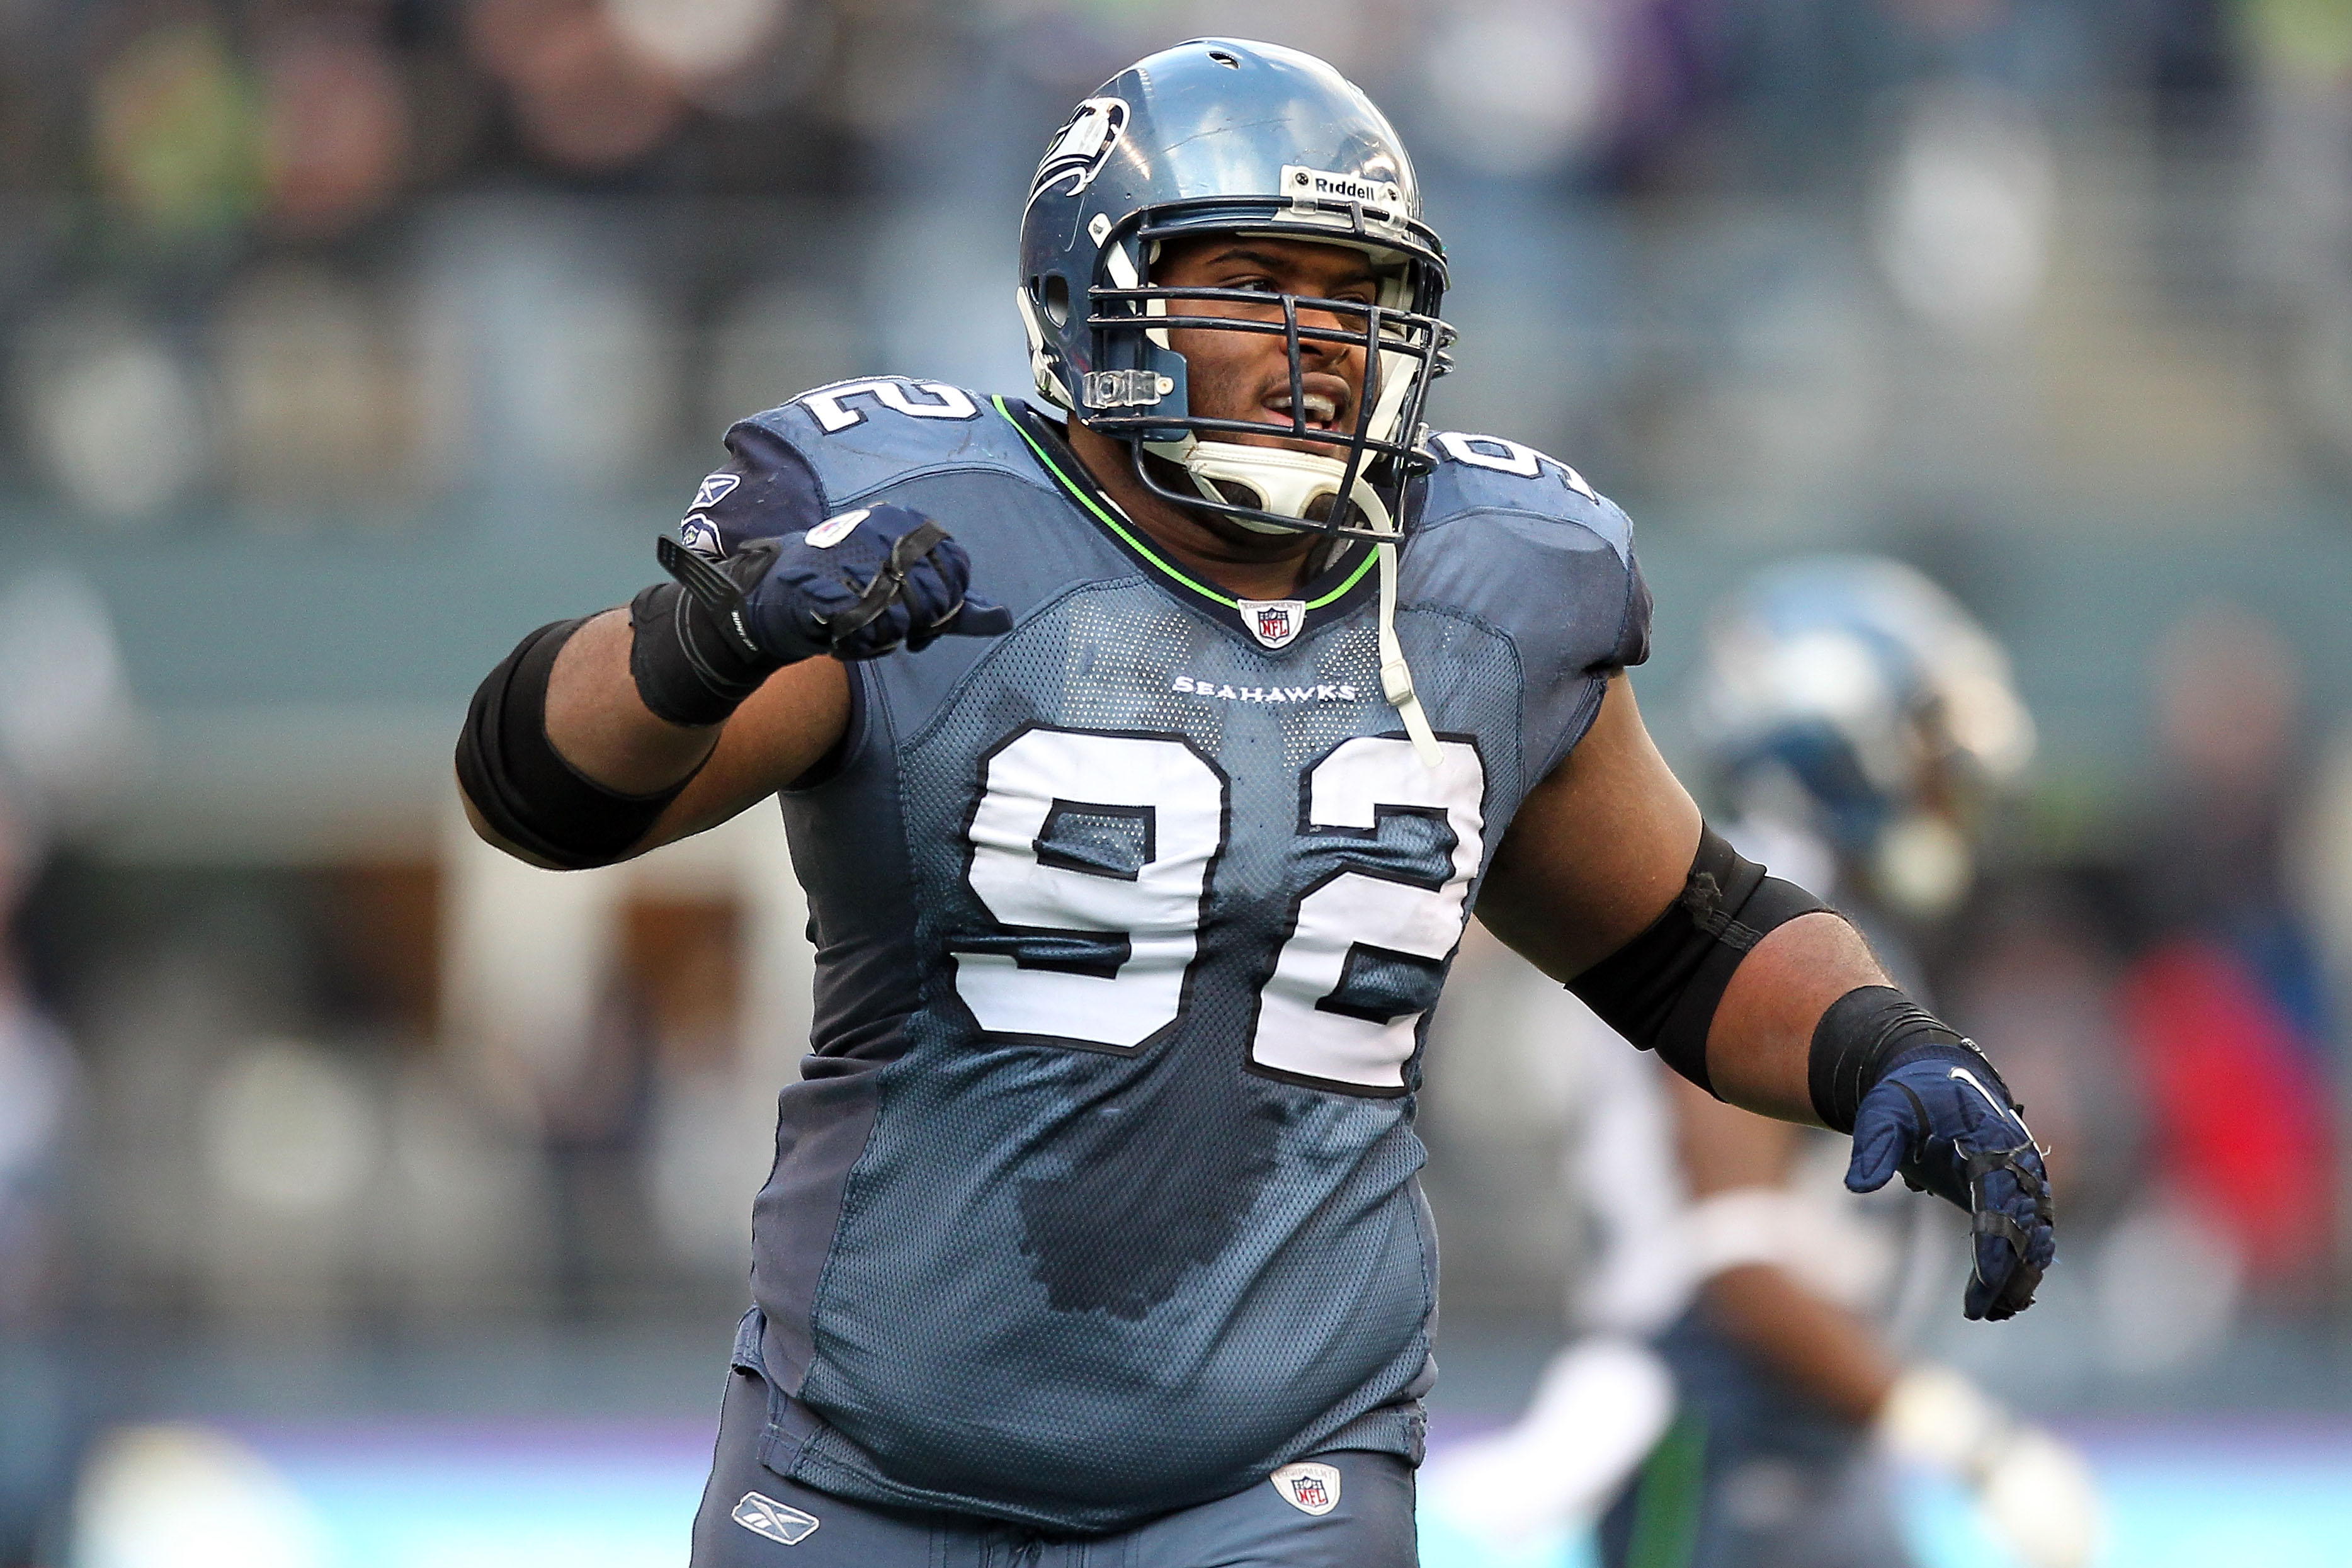 Mebane could remain a Seahawk, but is he a better fit in a different scheme or lined up at a different position?